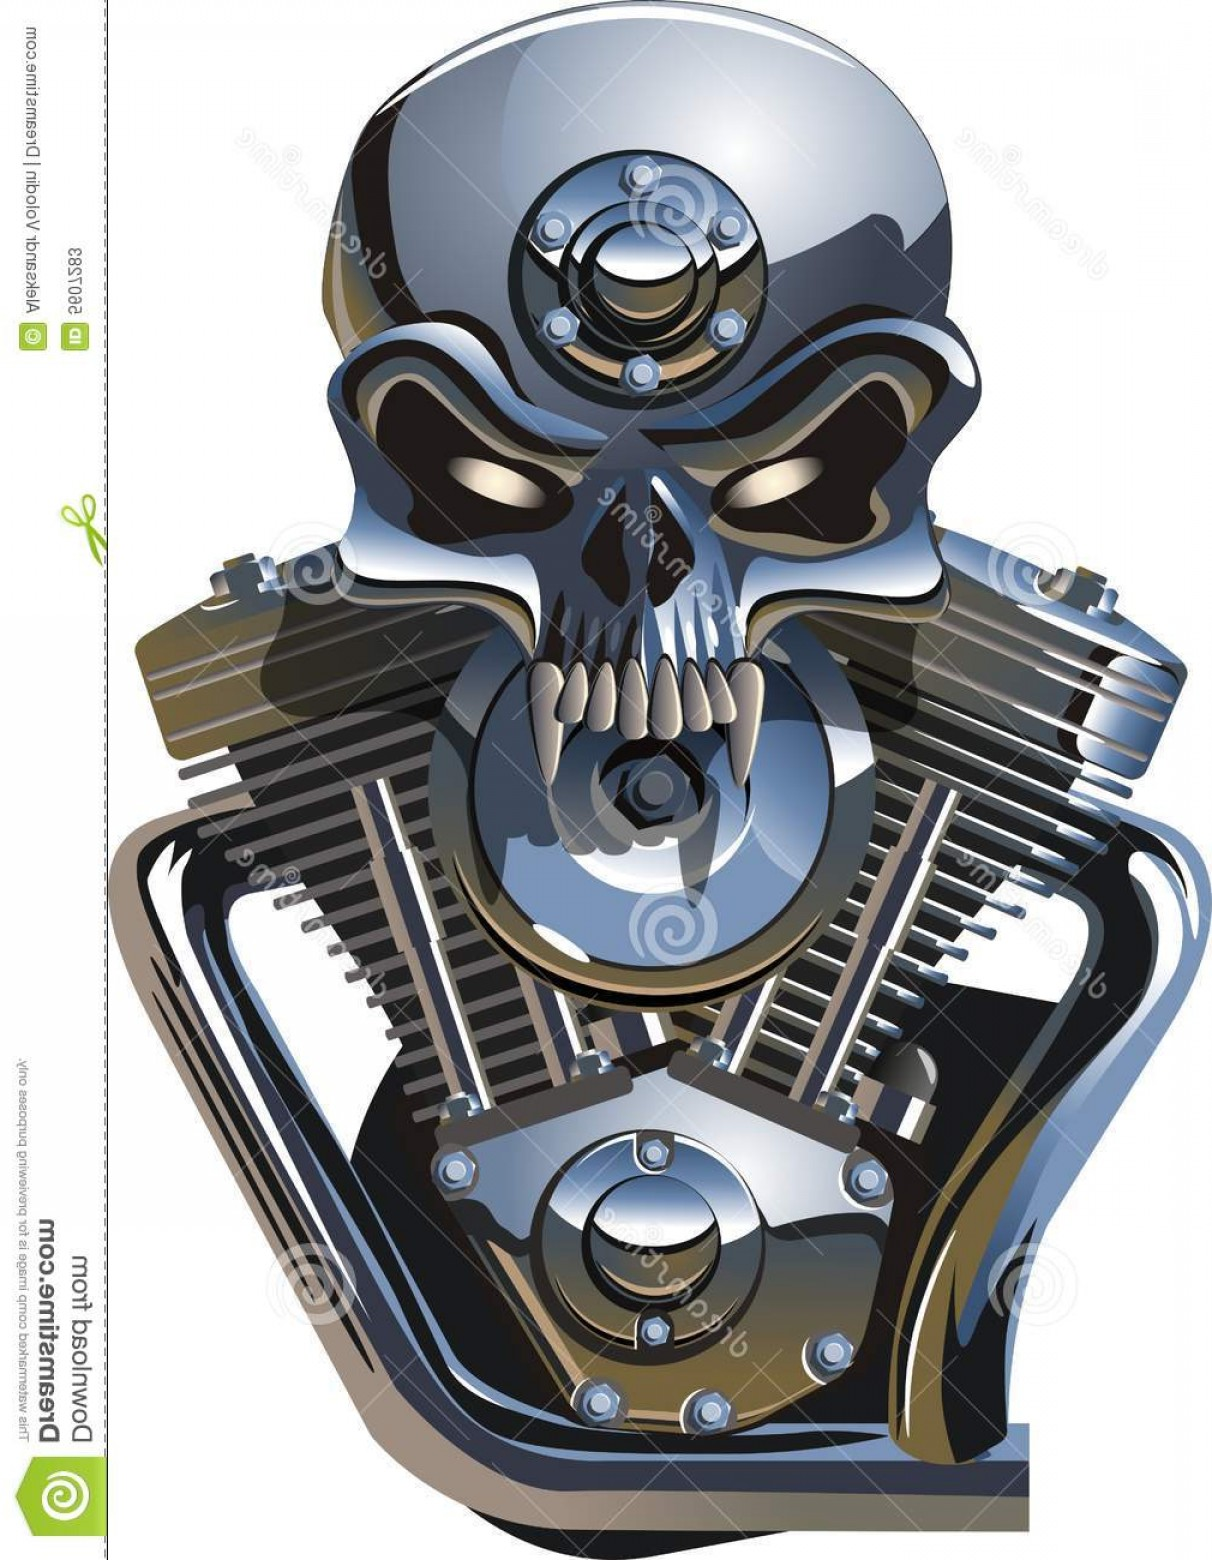 Harley -Davidson Skull Logo Vector: Stock Photos Vector Metall Skull Engine Image